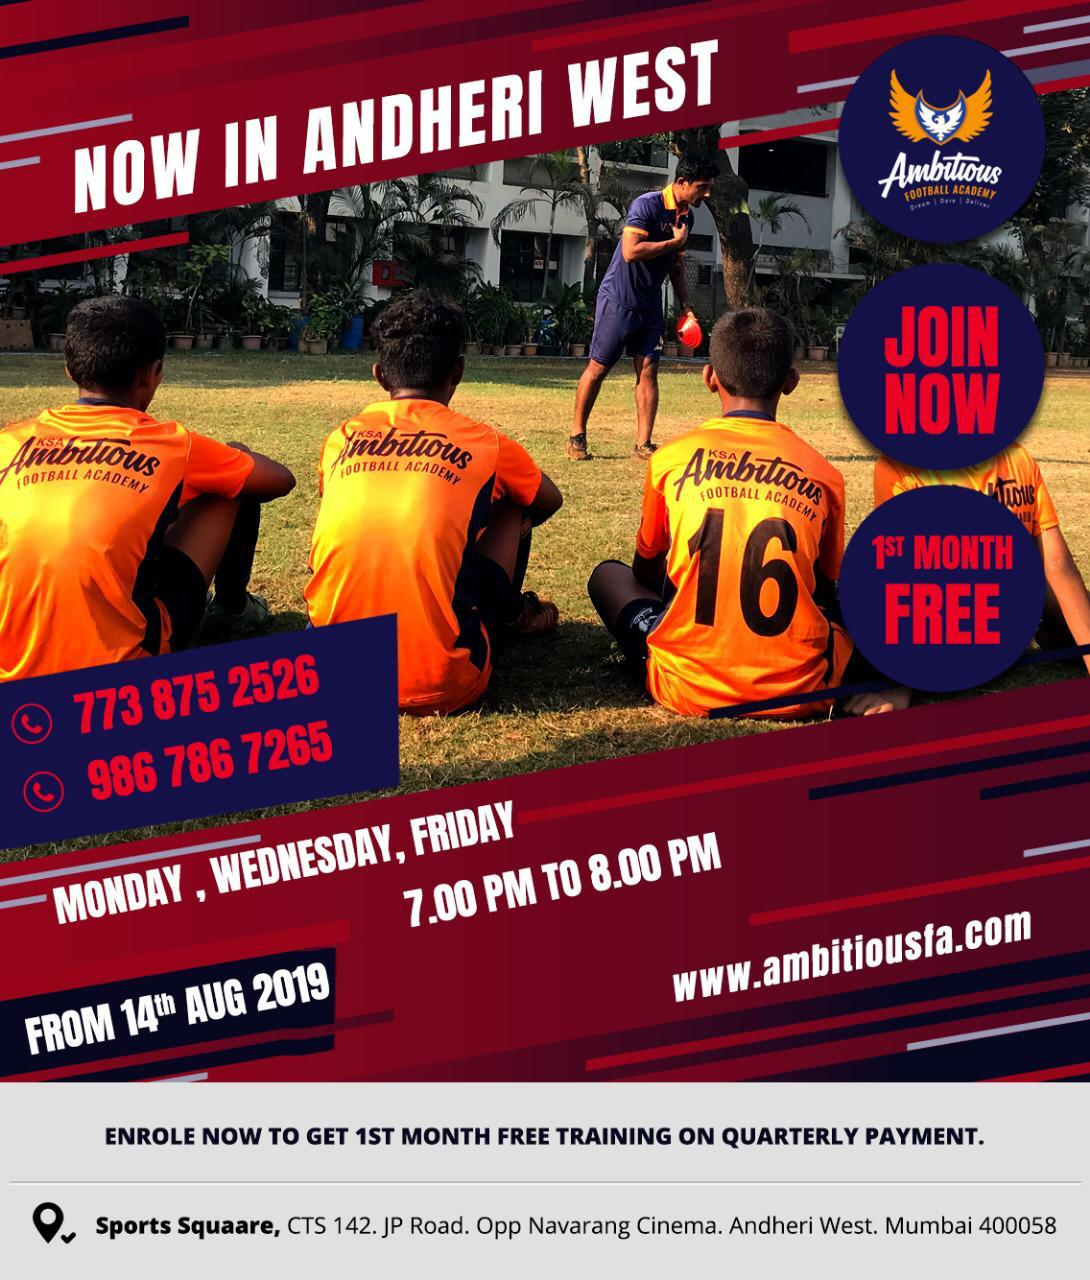 Ambitious Football Academy will be inaugurating their new centre tomorrow (August 14) at Andheri West, Mumbai